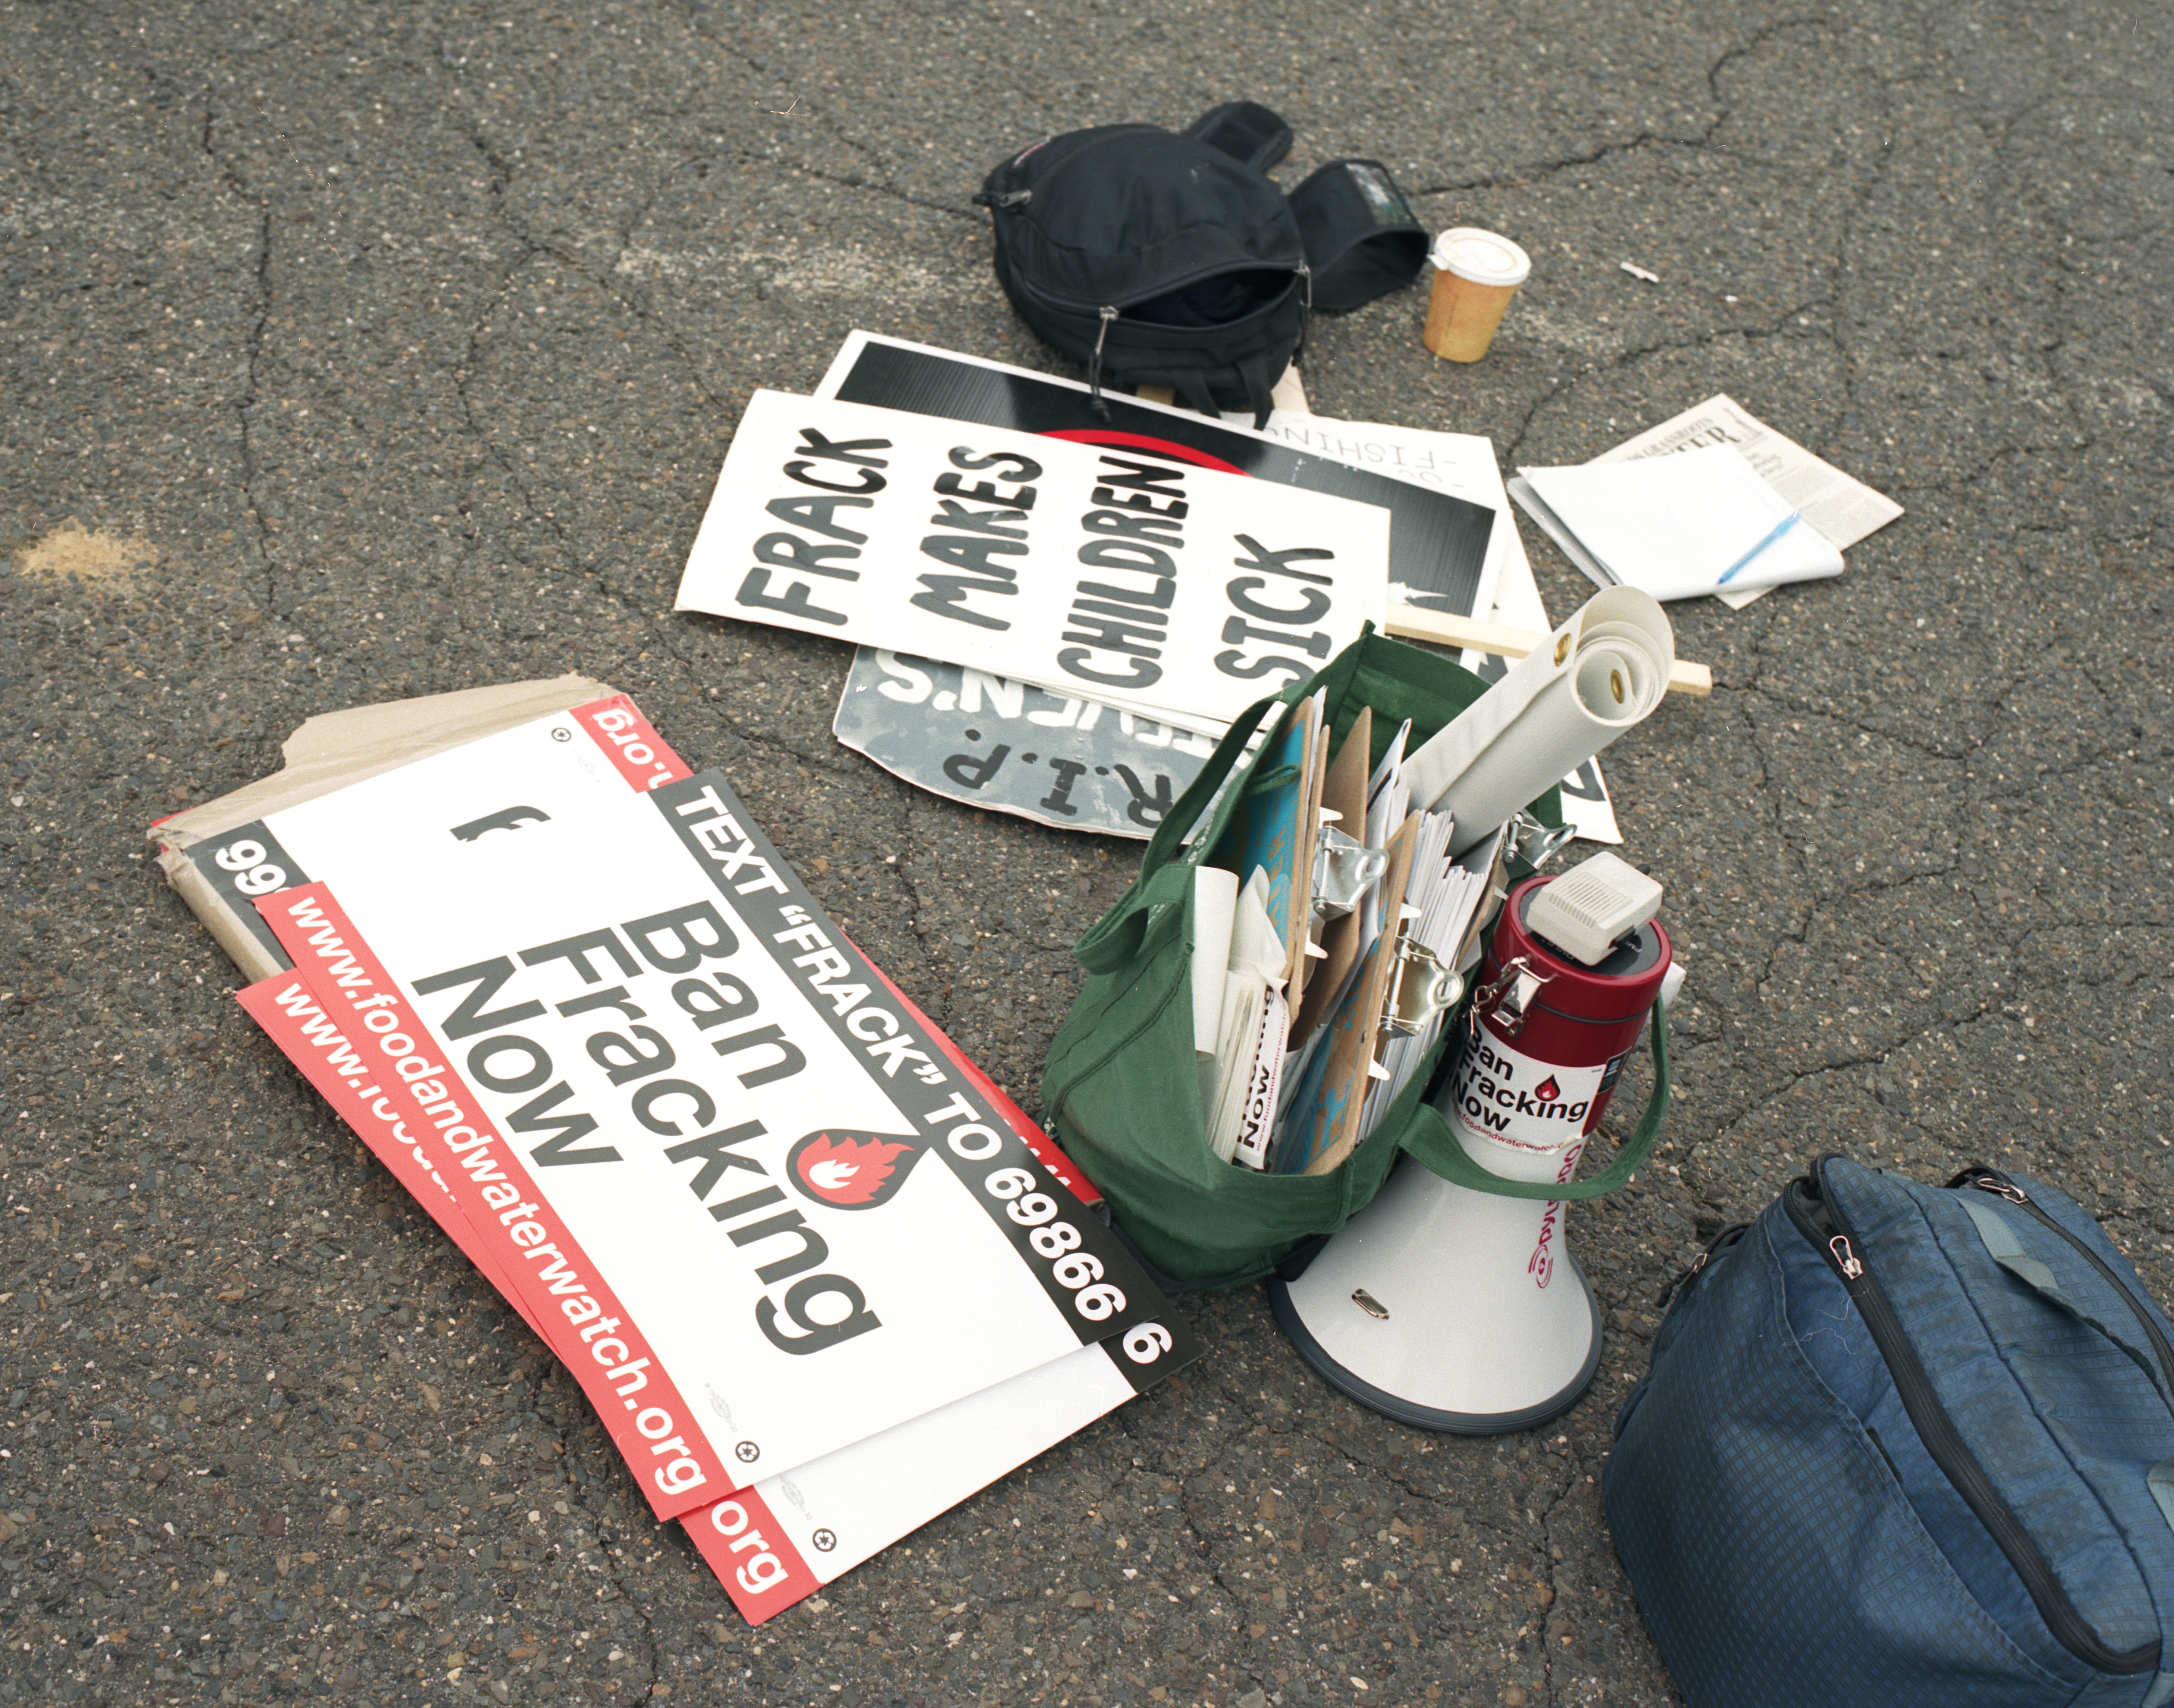 a protesters kit